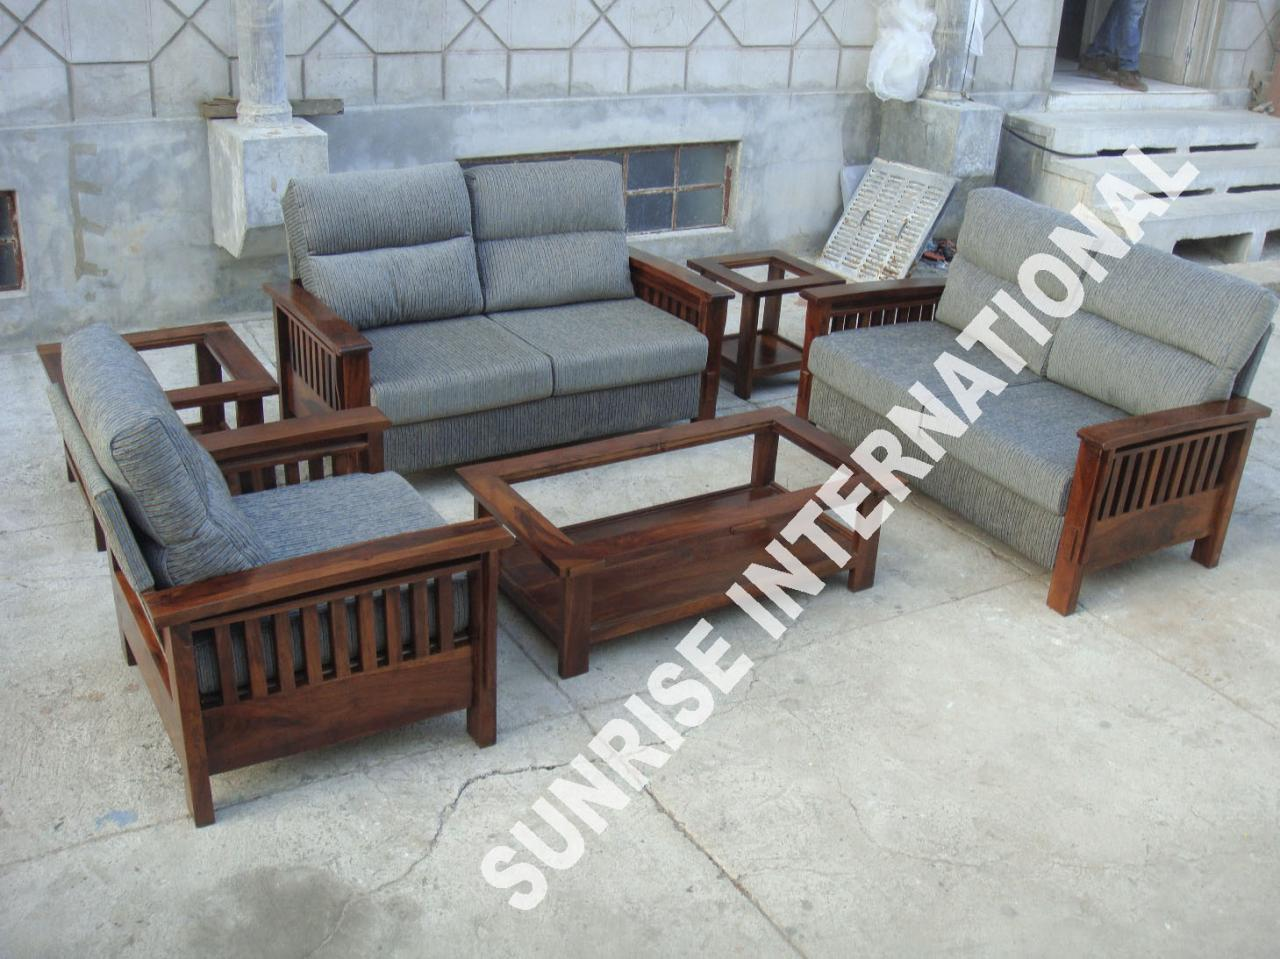 Wooden Sofa Sets ~ Sunrise international wooden sofa sets l shade set